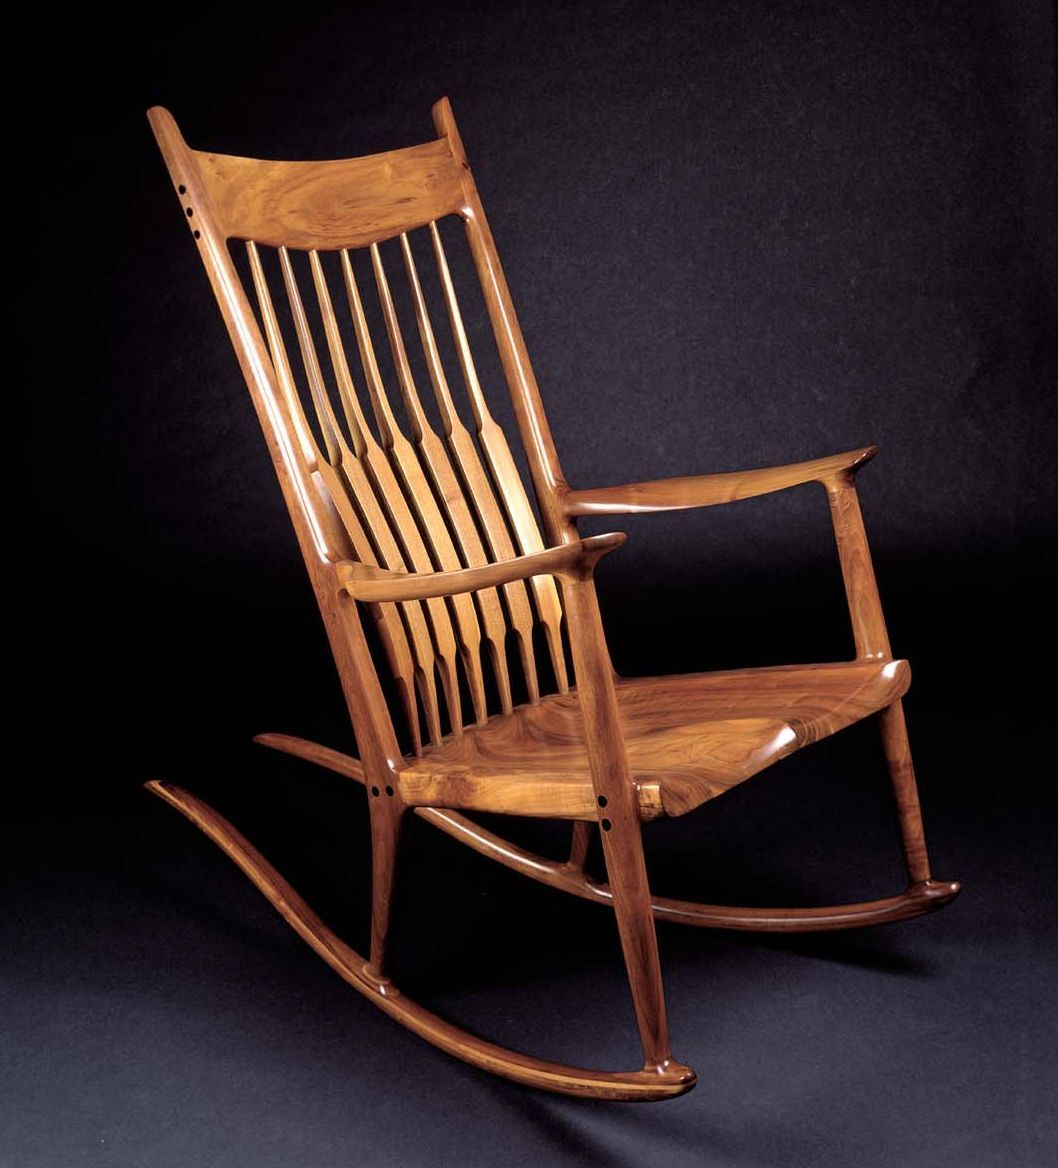 rocking chair fine woodworking mies van der rohe barcelona more of my fathers work koa wood